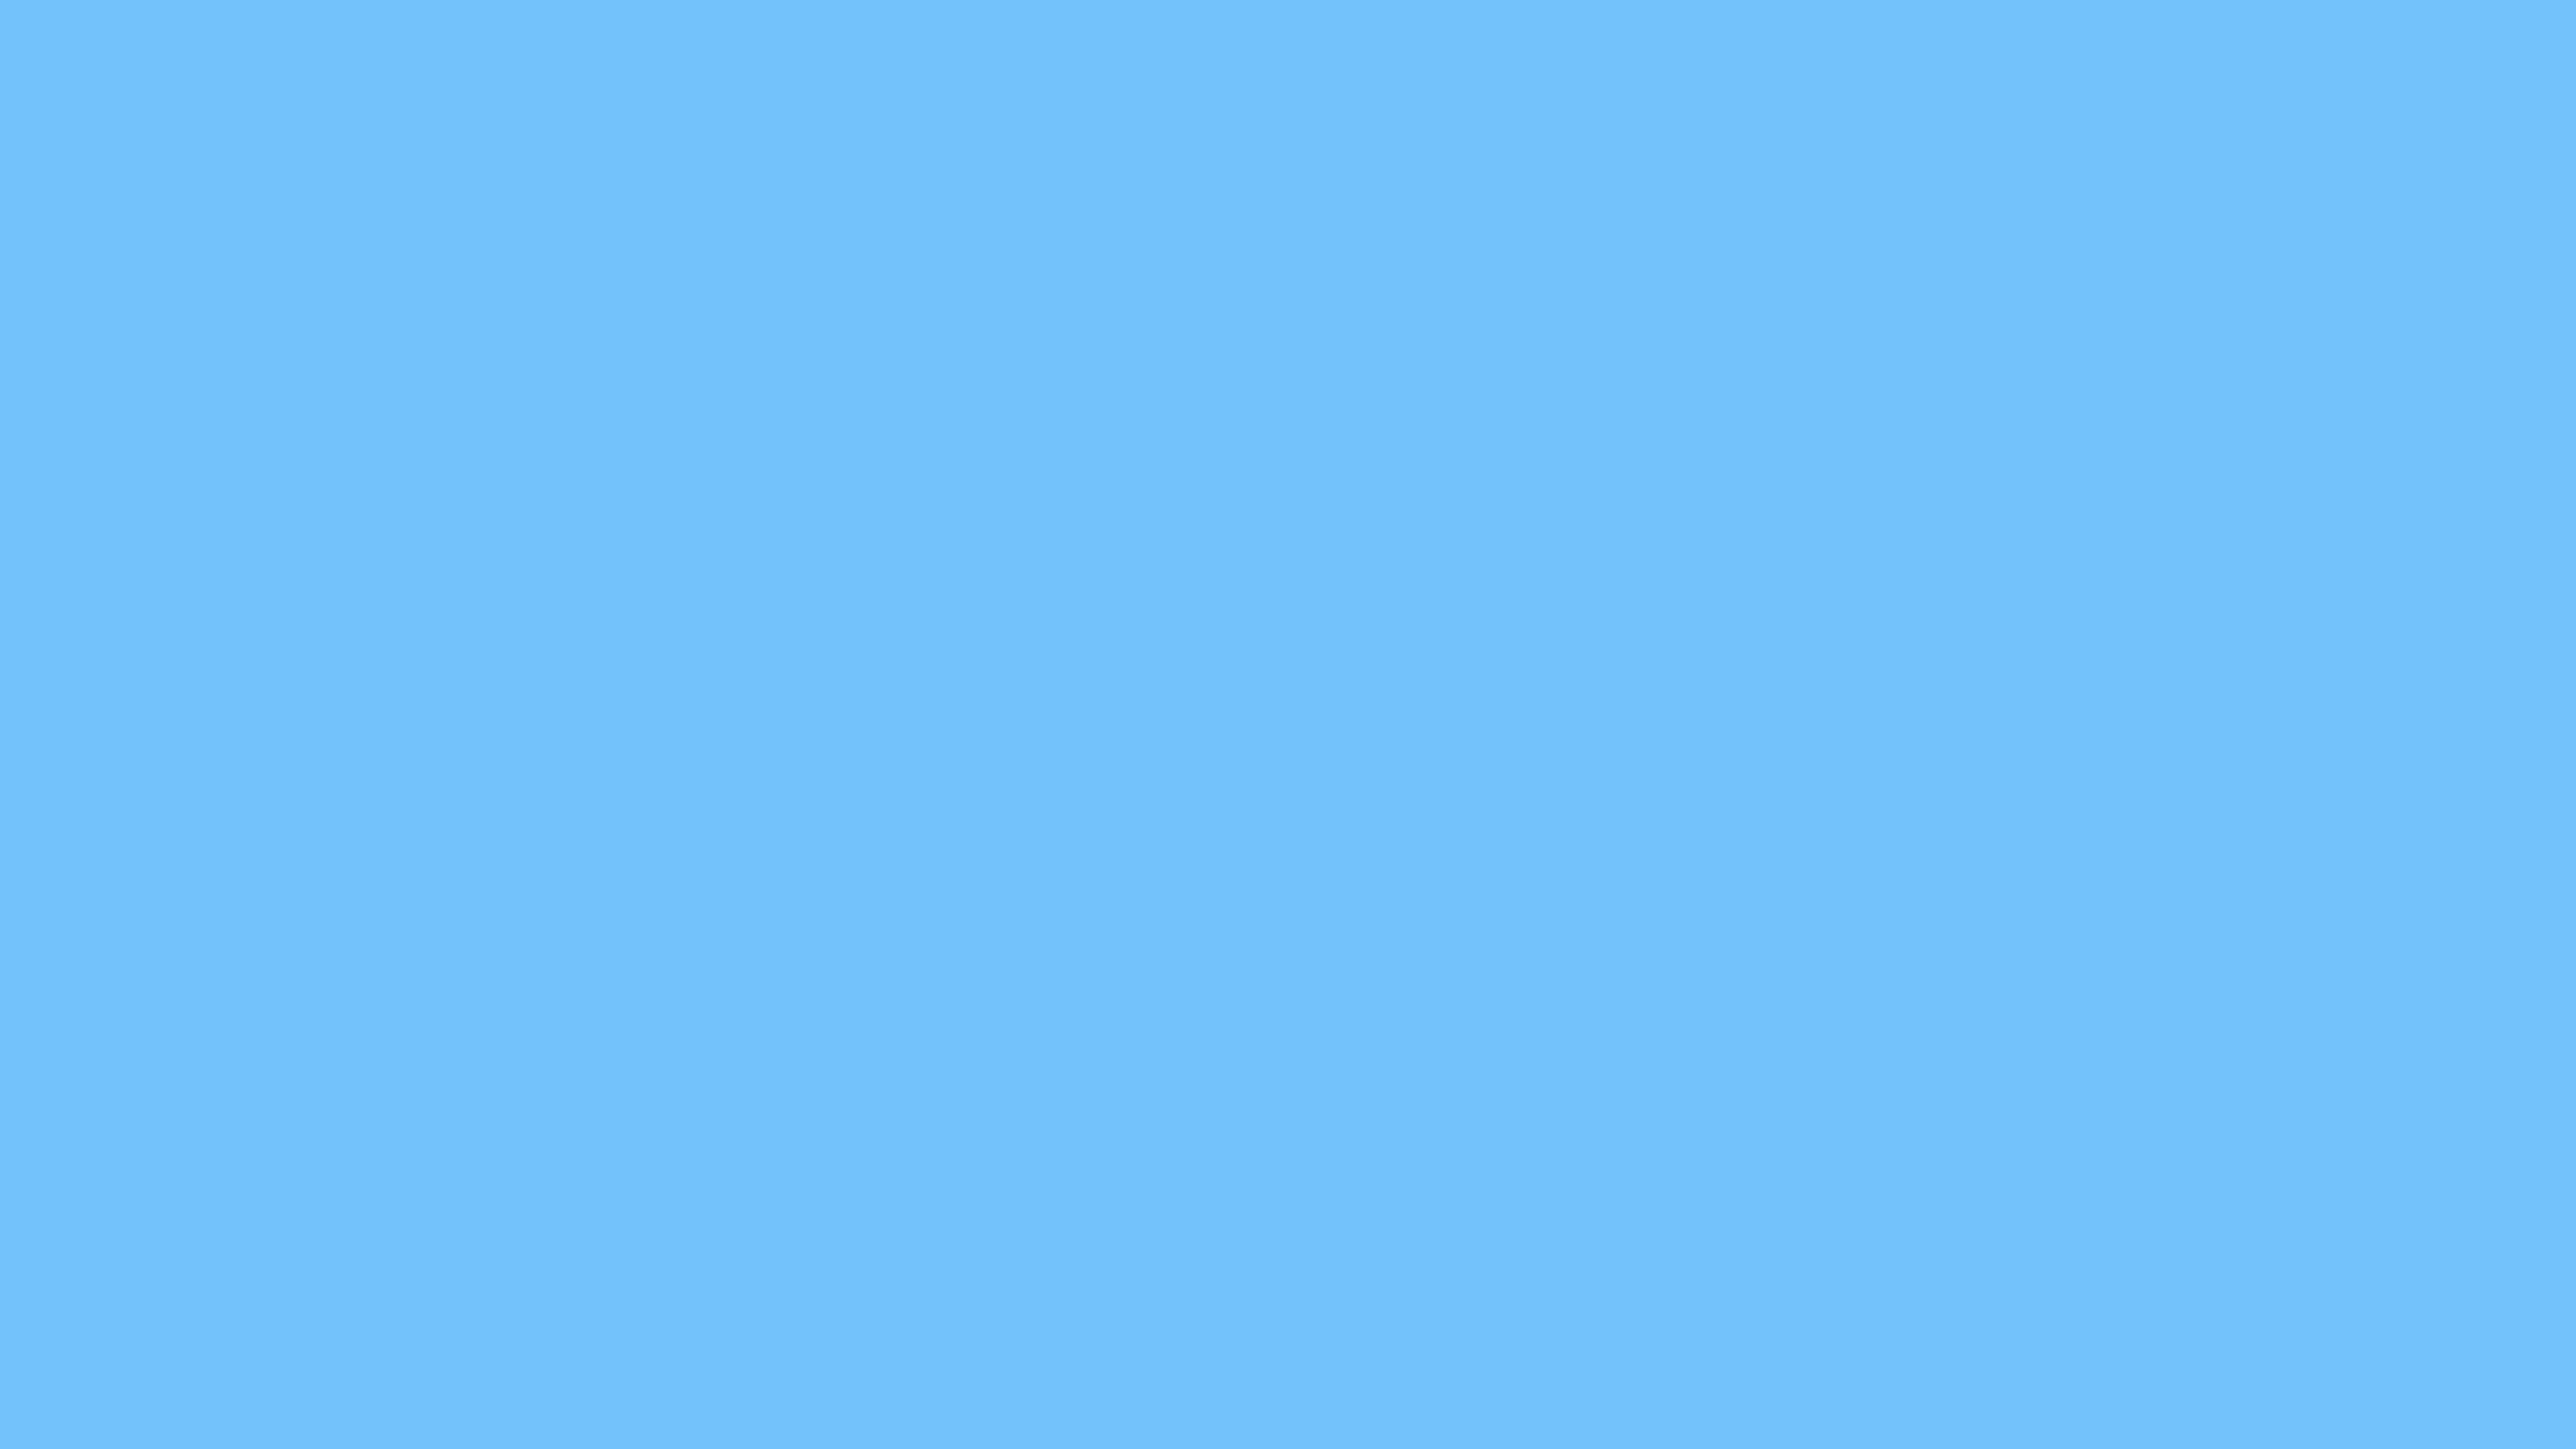 3840x2160 Maya Blue Solid Color Background